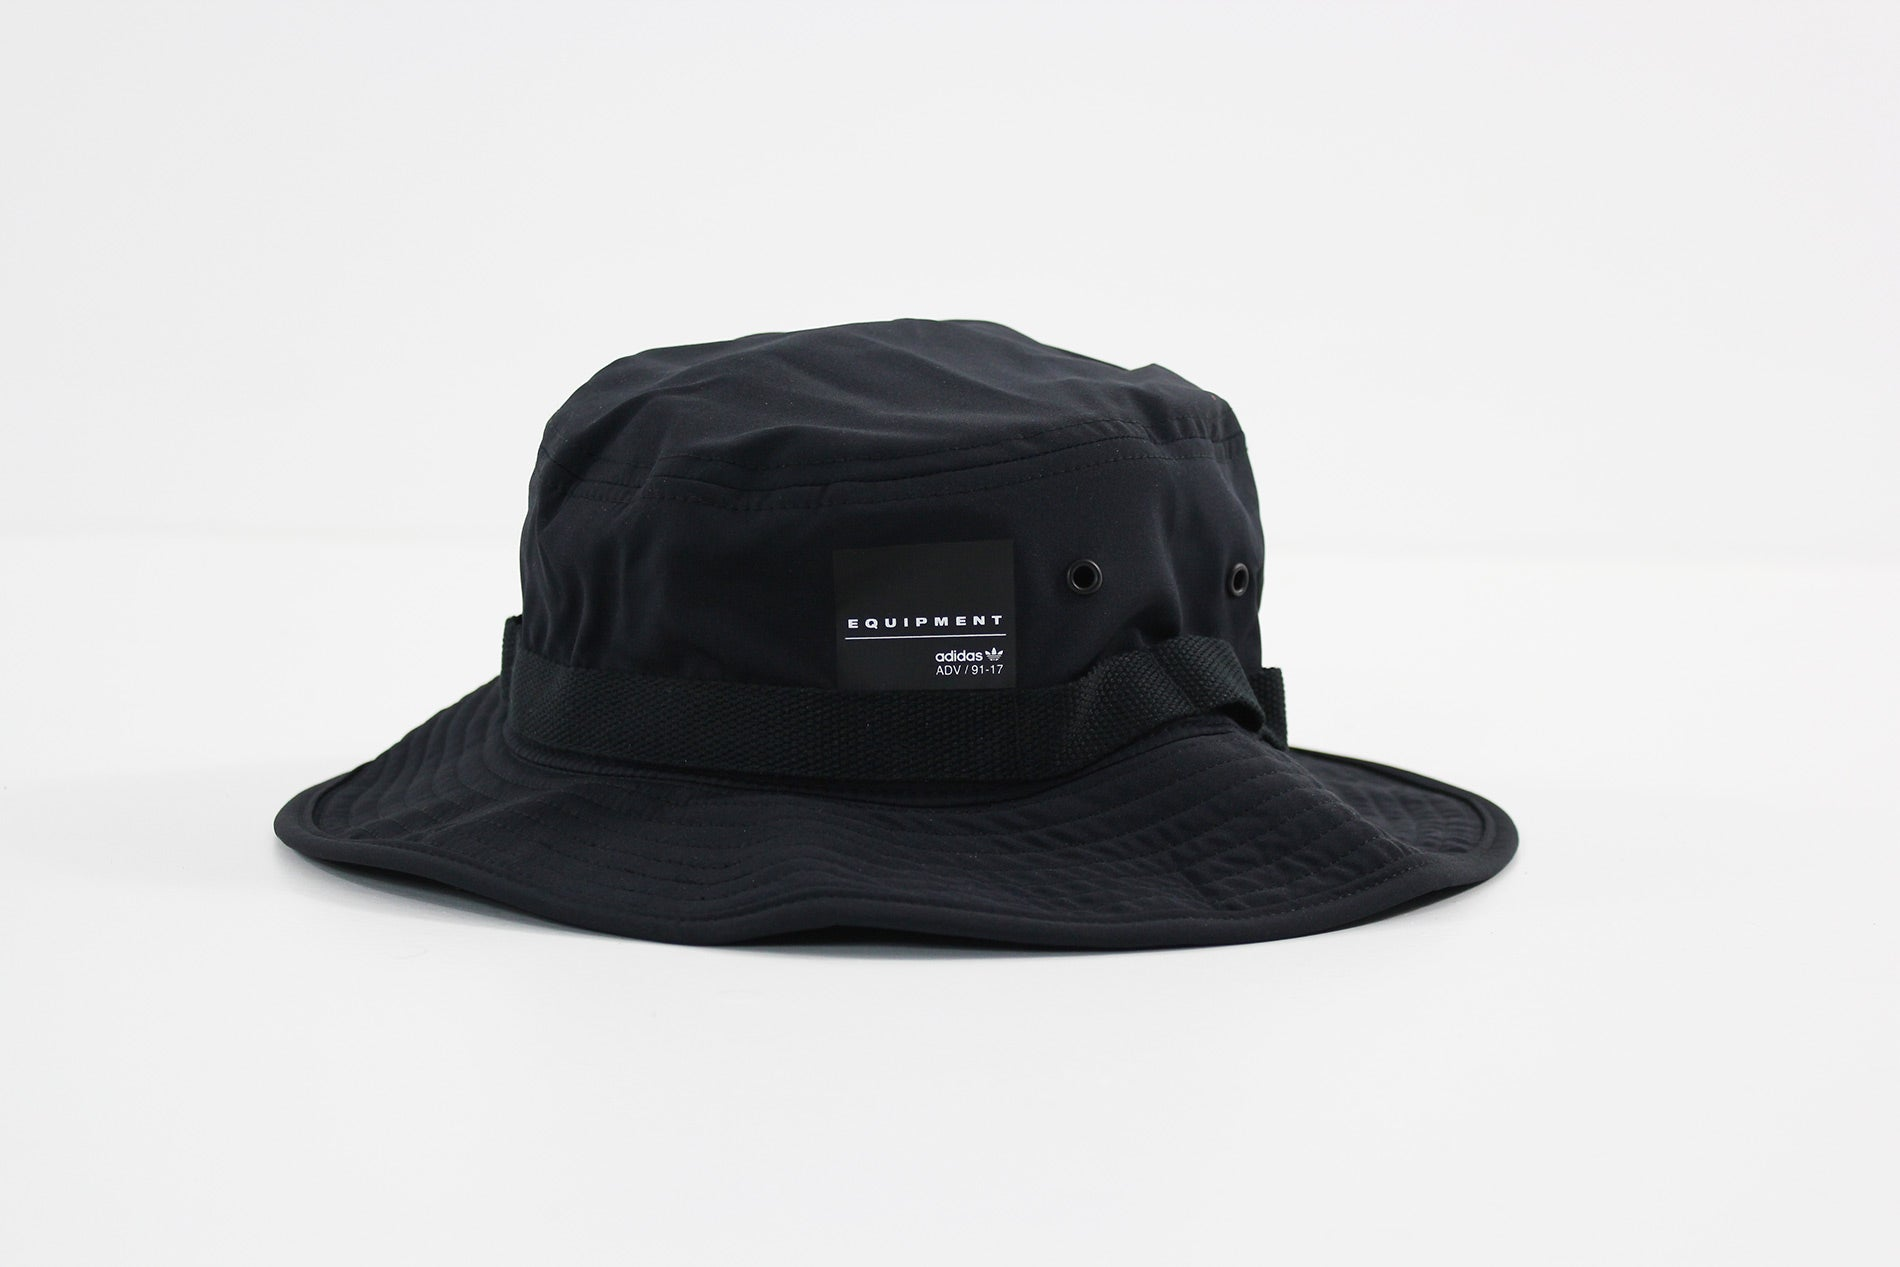 Adidas - BOONIE HAT EQT (BLACK) - Sneakerworld 73486fe6f3b